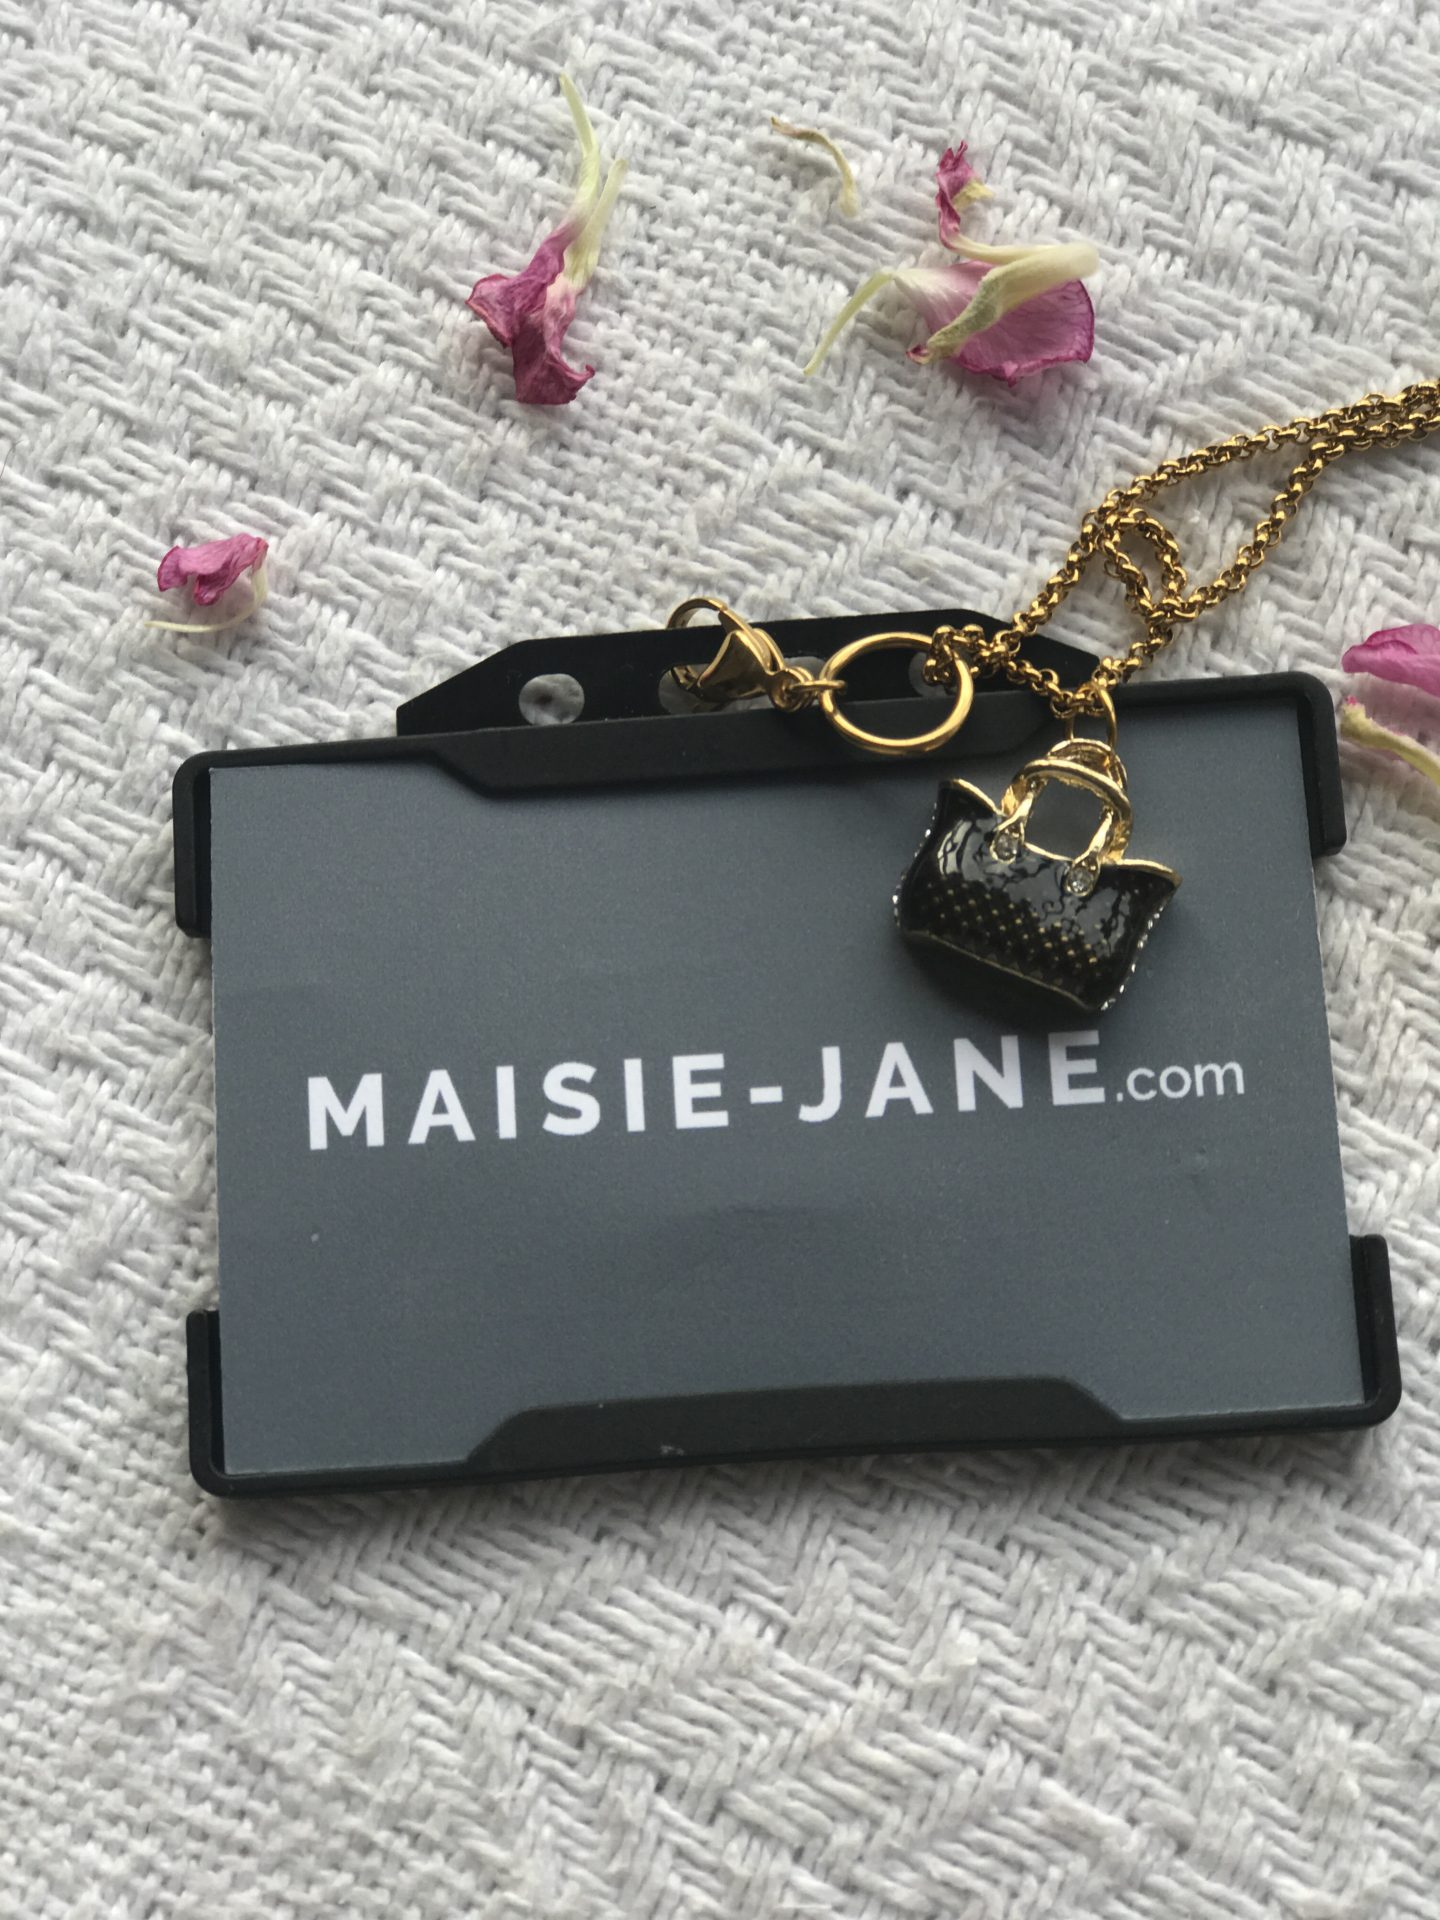 Maisie-Jane accessories